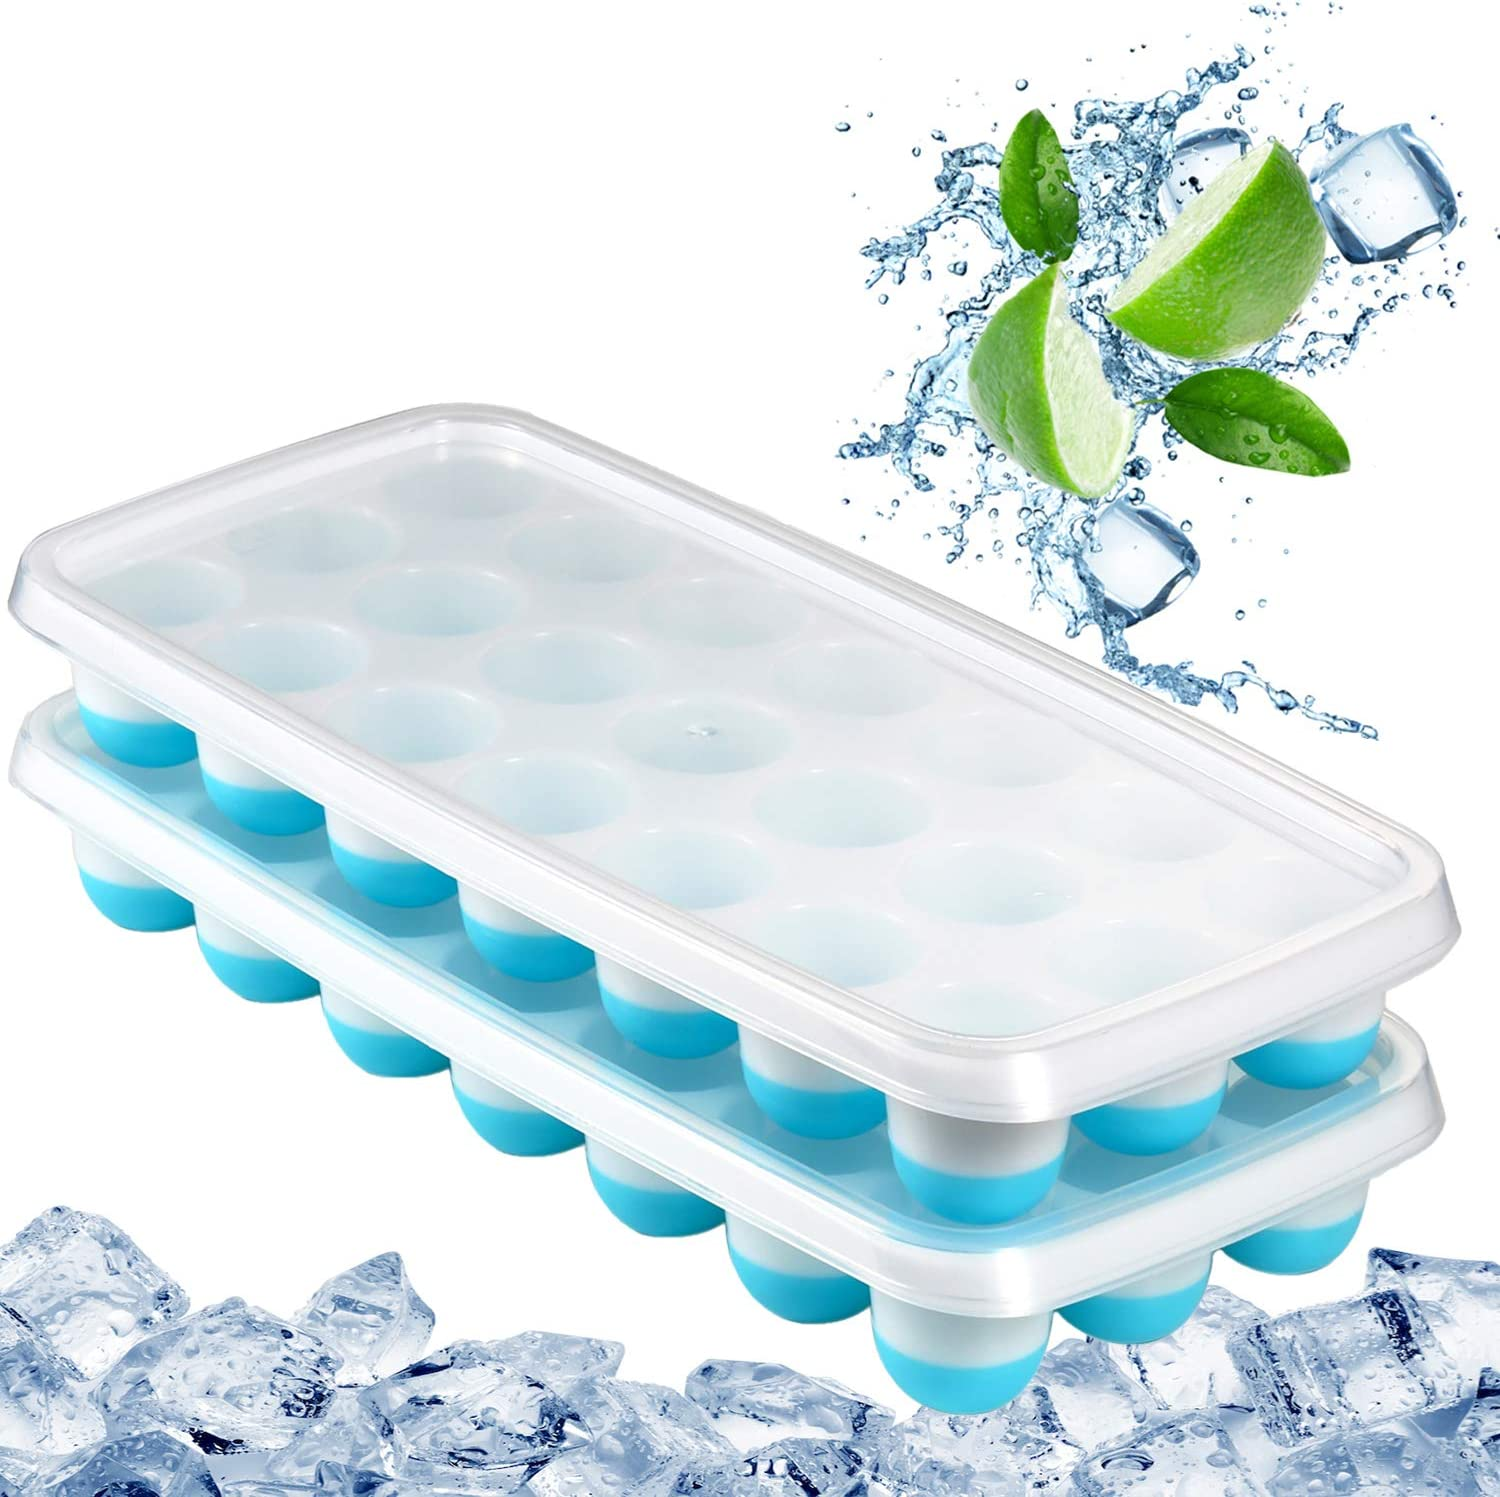 Easy-Release Mini Ice Tray Molds Blue 2 Pack Silicone Ice Cube Trays with Lid